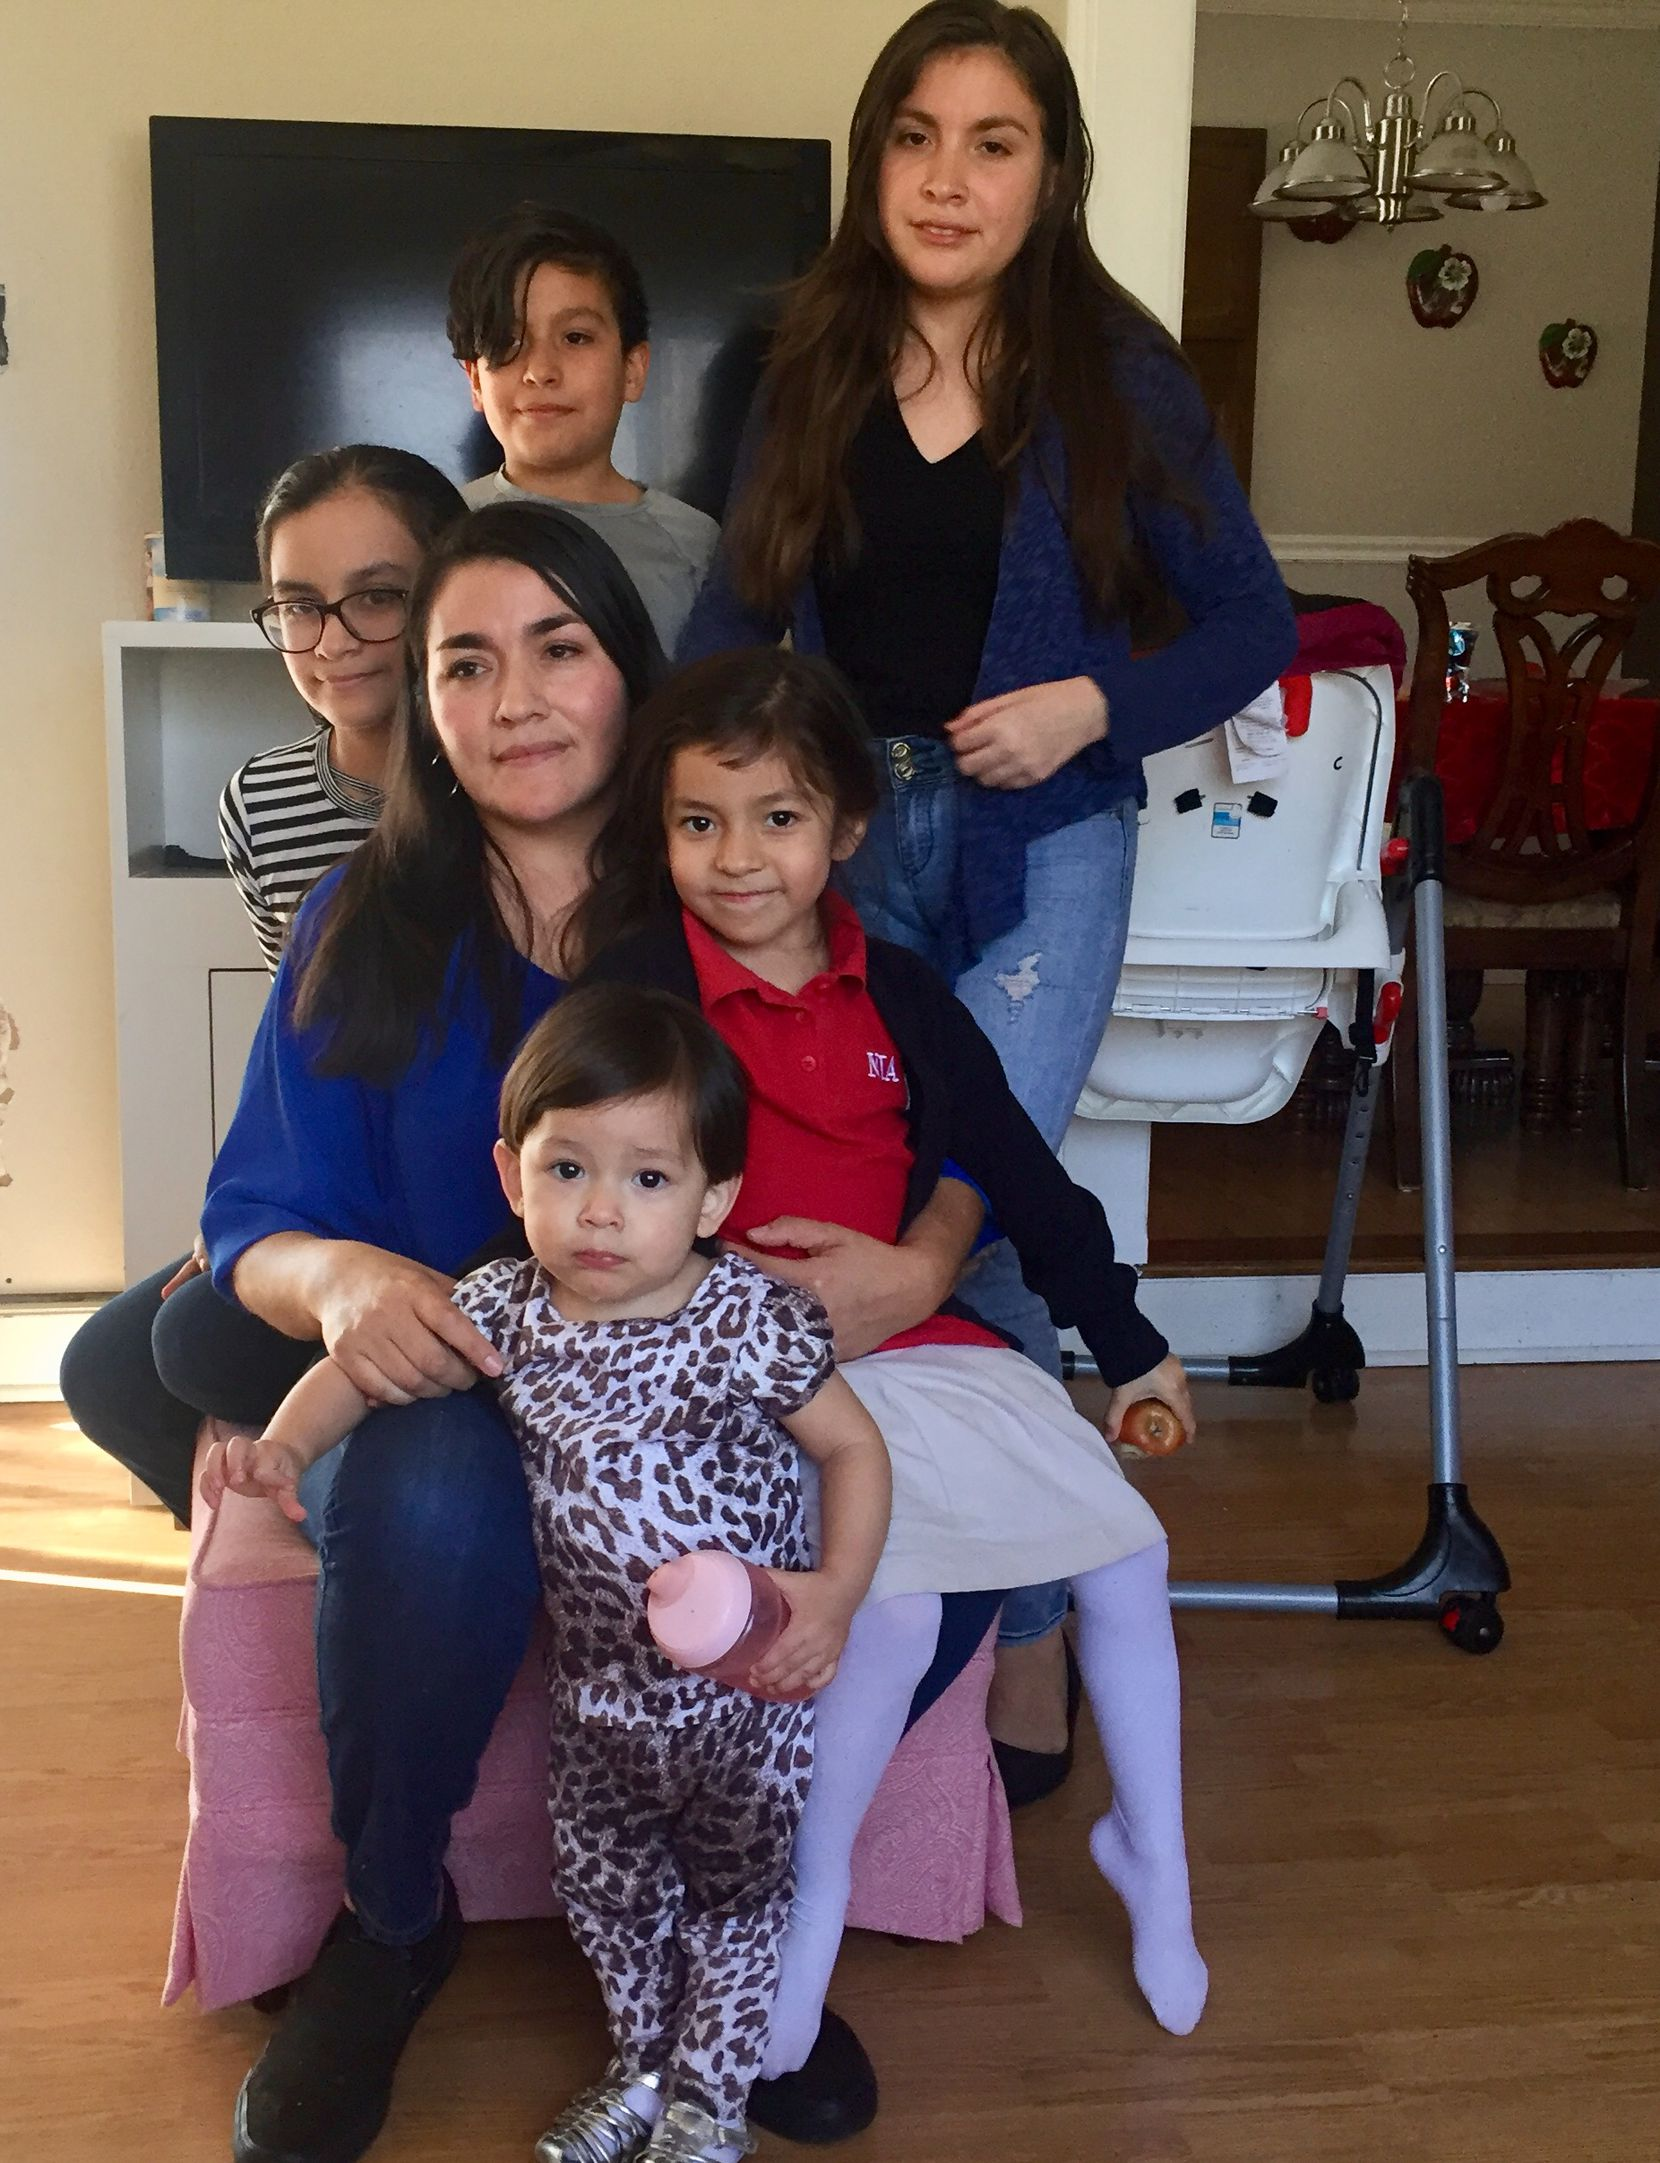 Lucia Mejia and her children await the outcome of Adolfo Mejia's deportation case. The children are U.S. citizens, and the mother is a legal resident.